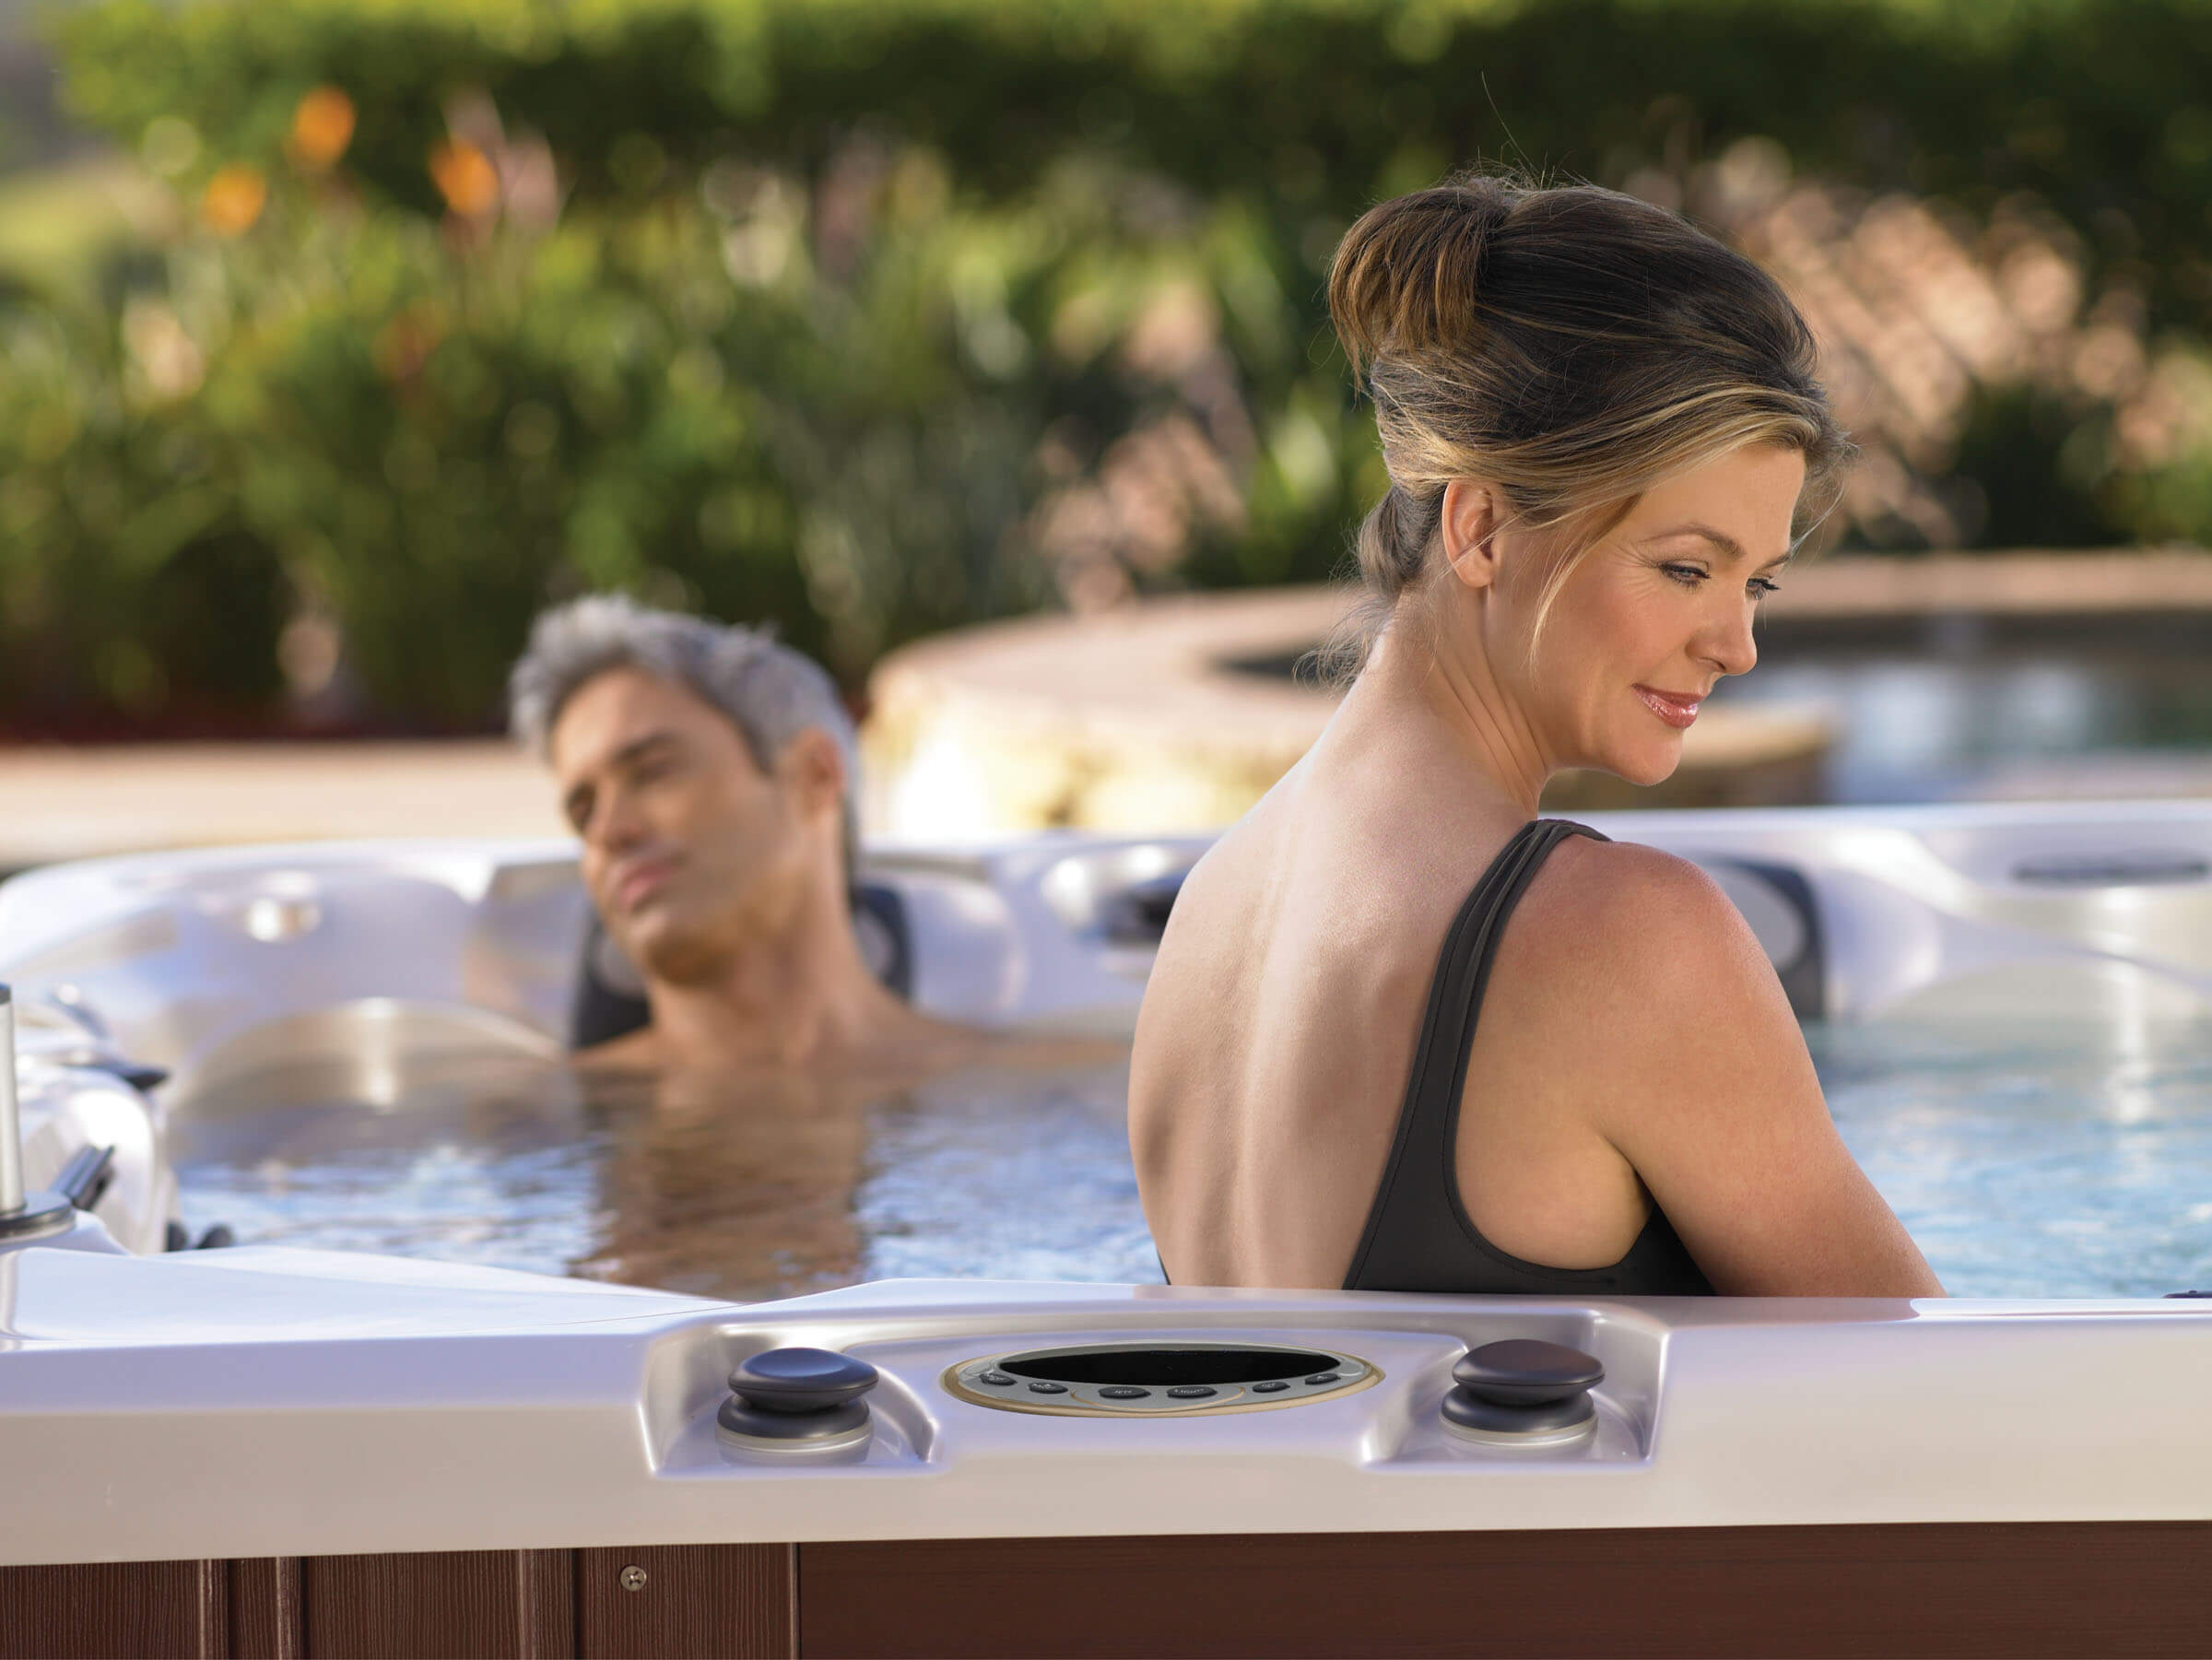 RUSSO's Has the Perfect Spa or Hot Tub for You